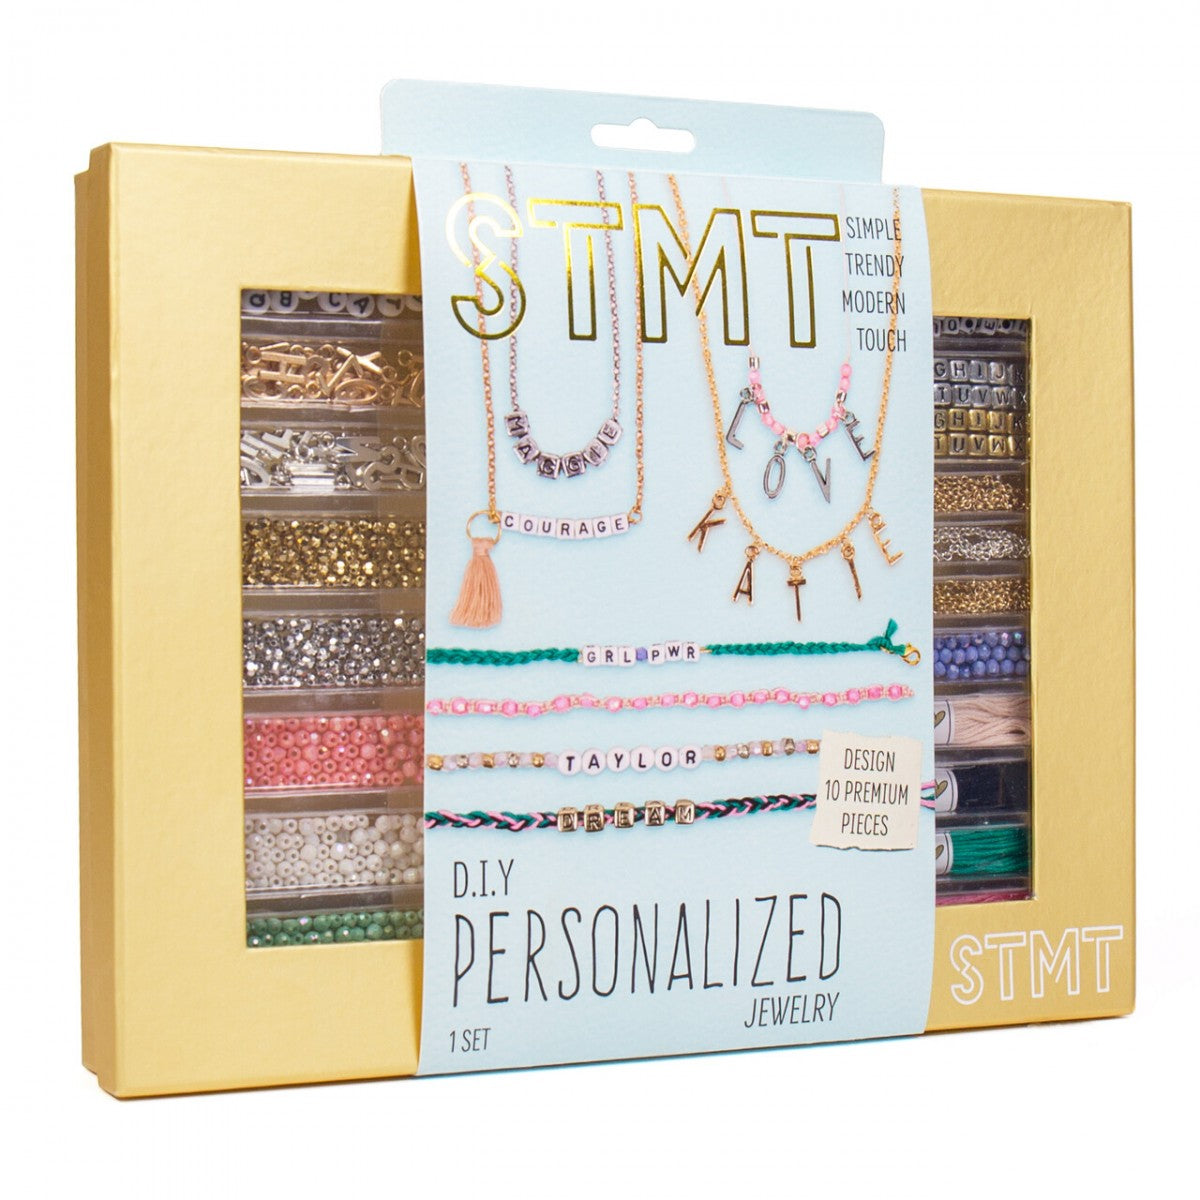 D.I.Y. Personalized Jewelry Kit